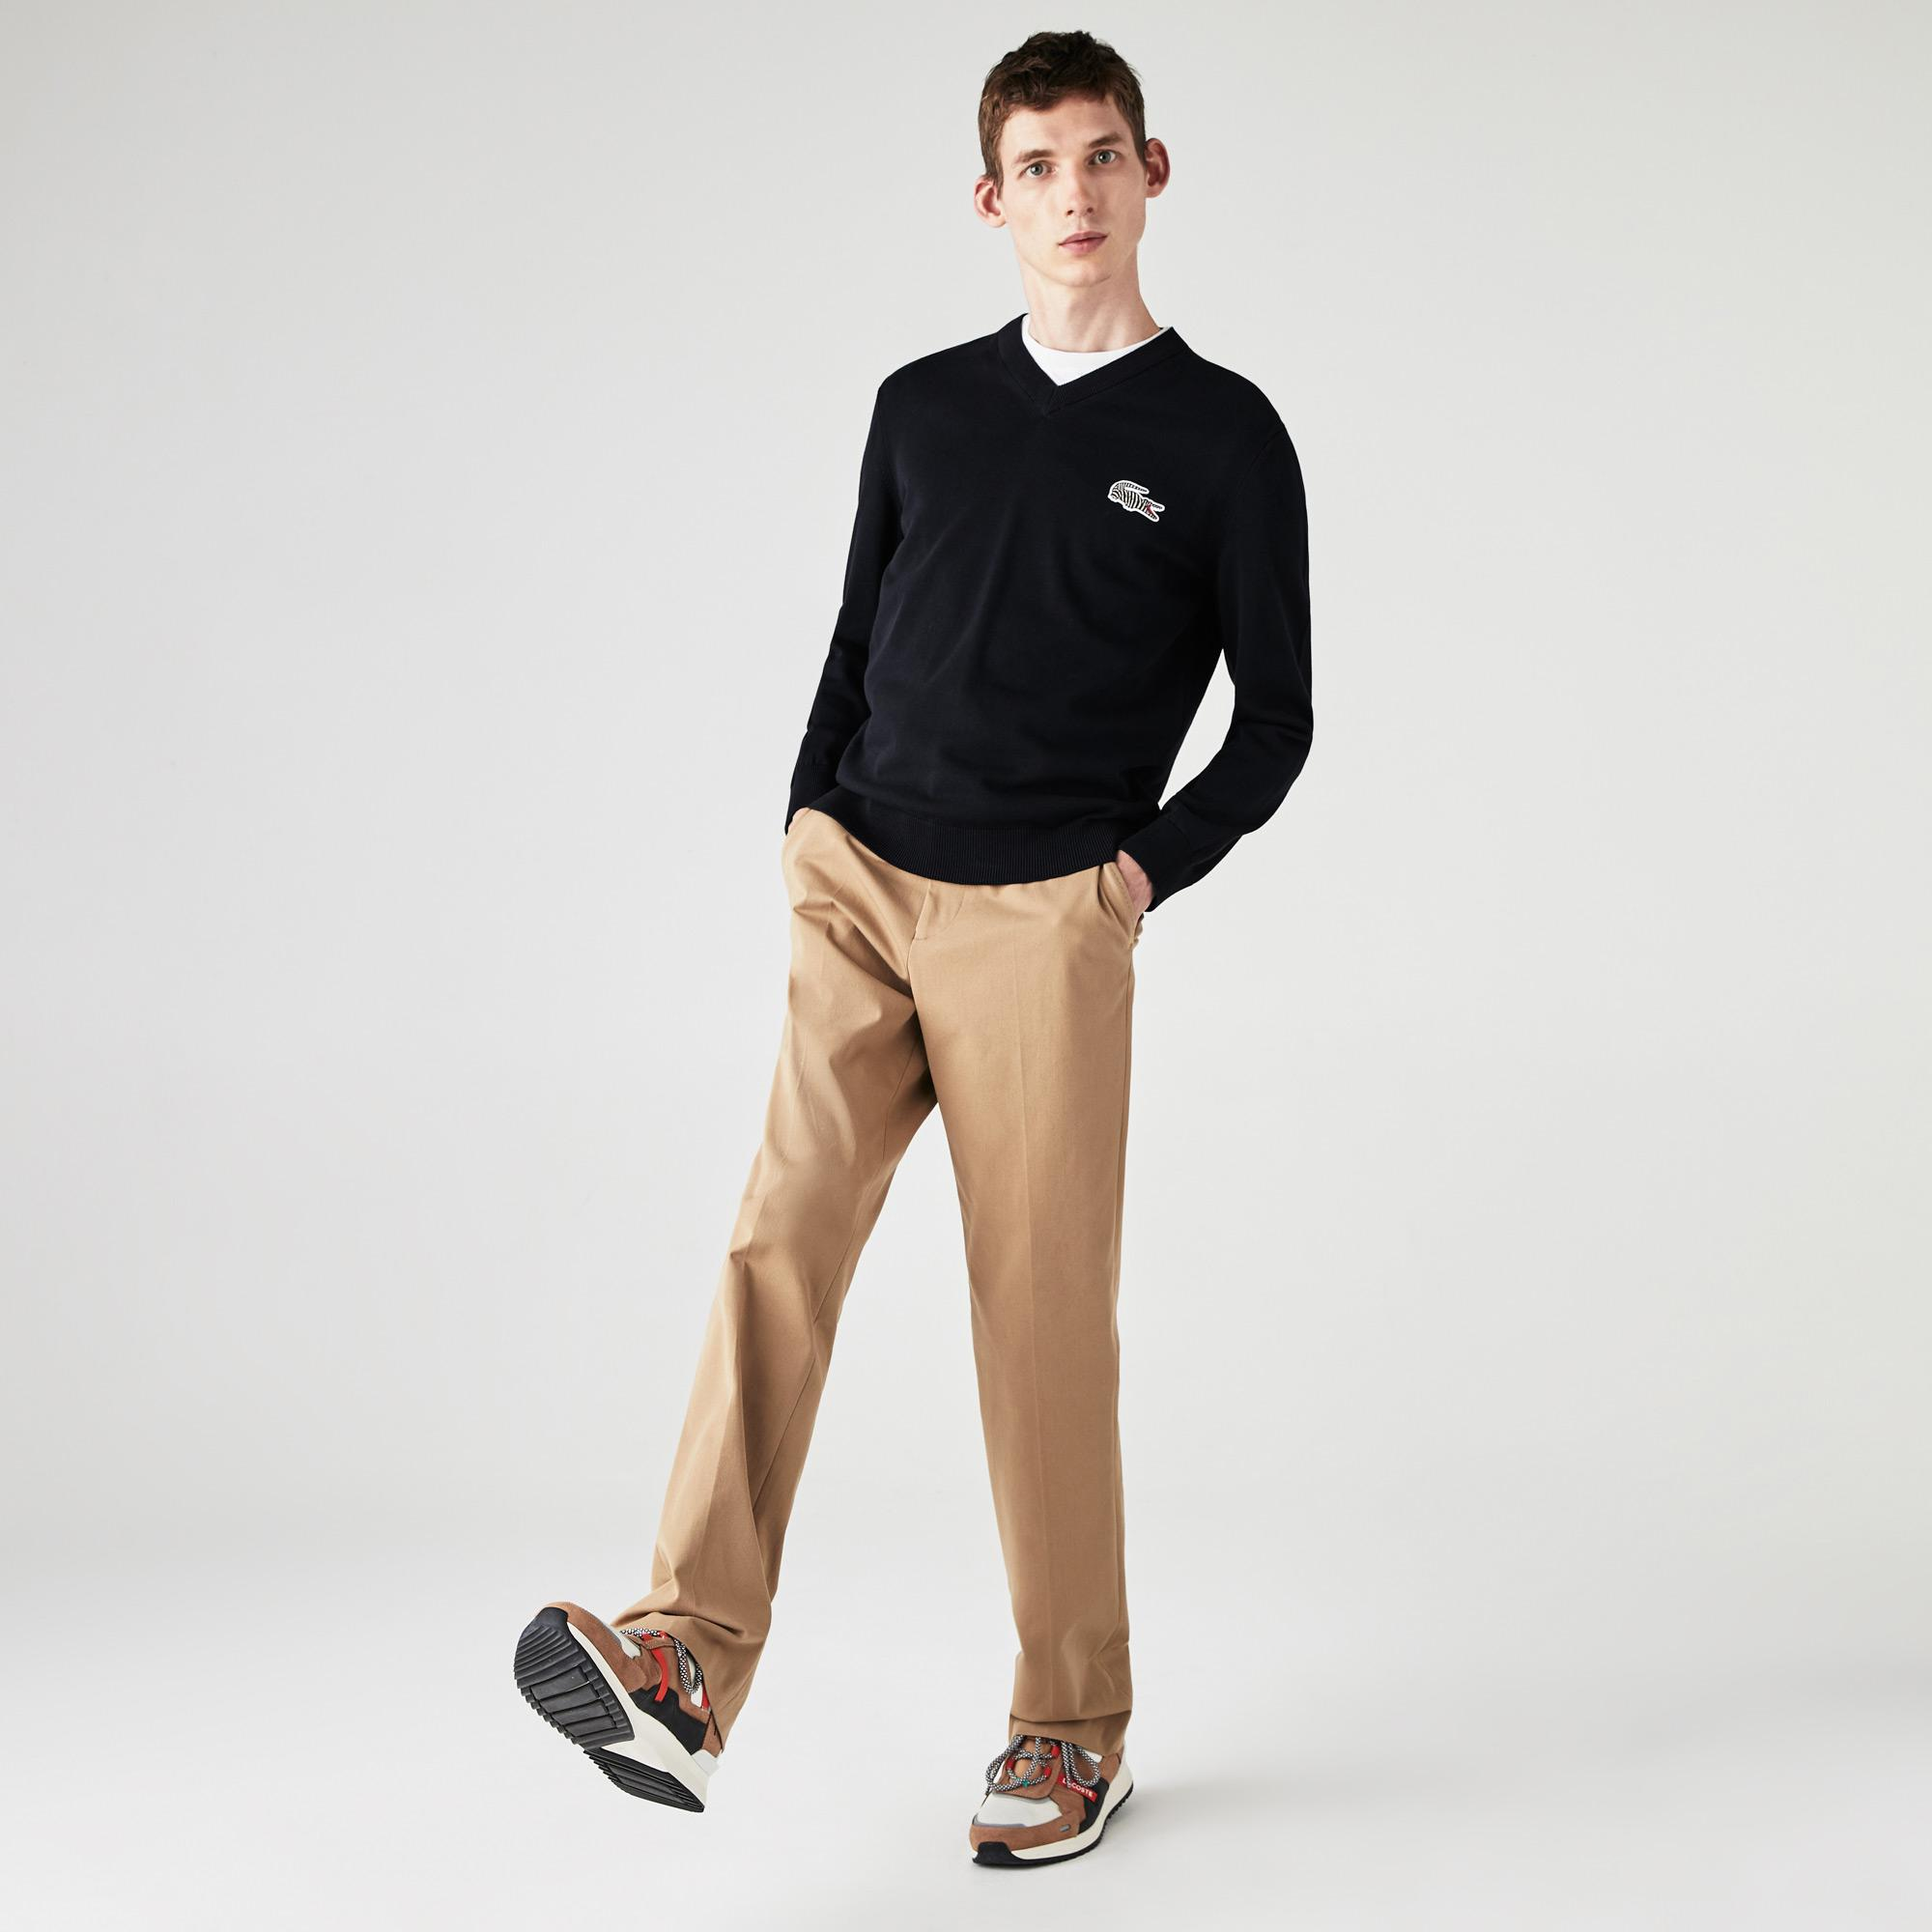 Lacoste x National Geographic Men's V-neck Cotton Sweater